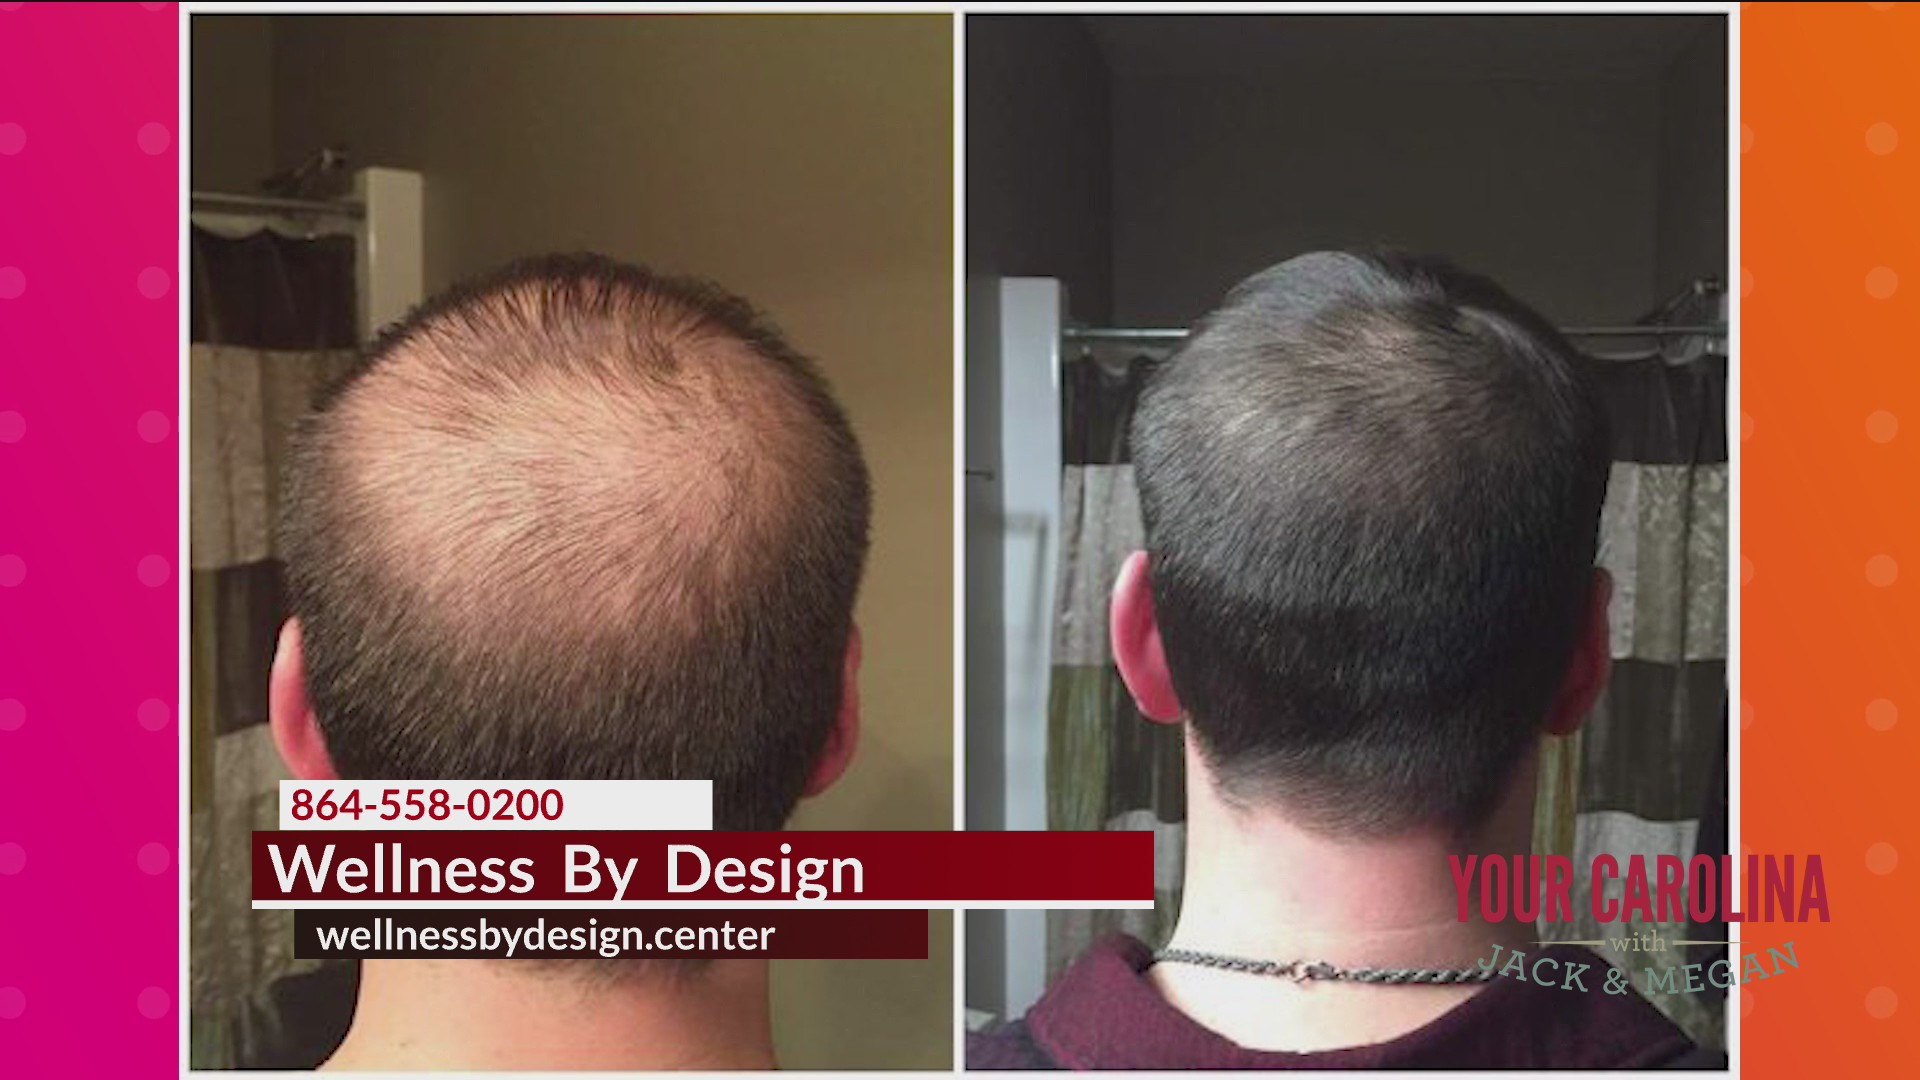 Wellness By Design - Hair Restoration